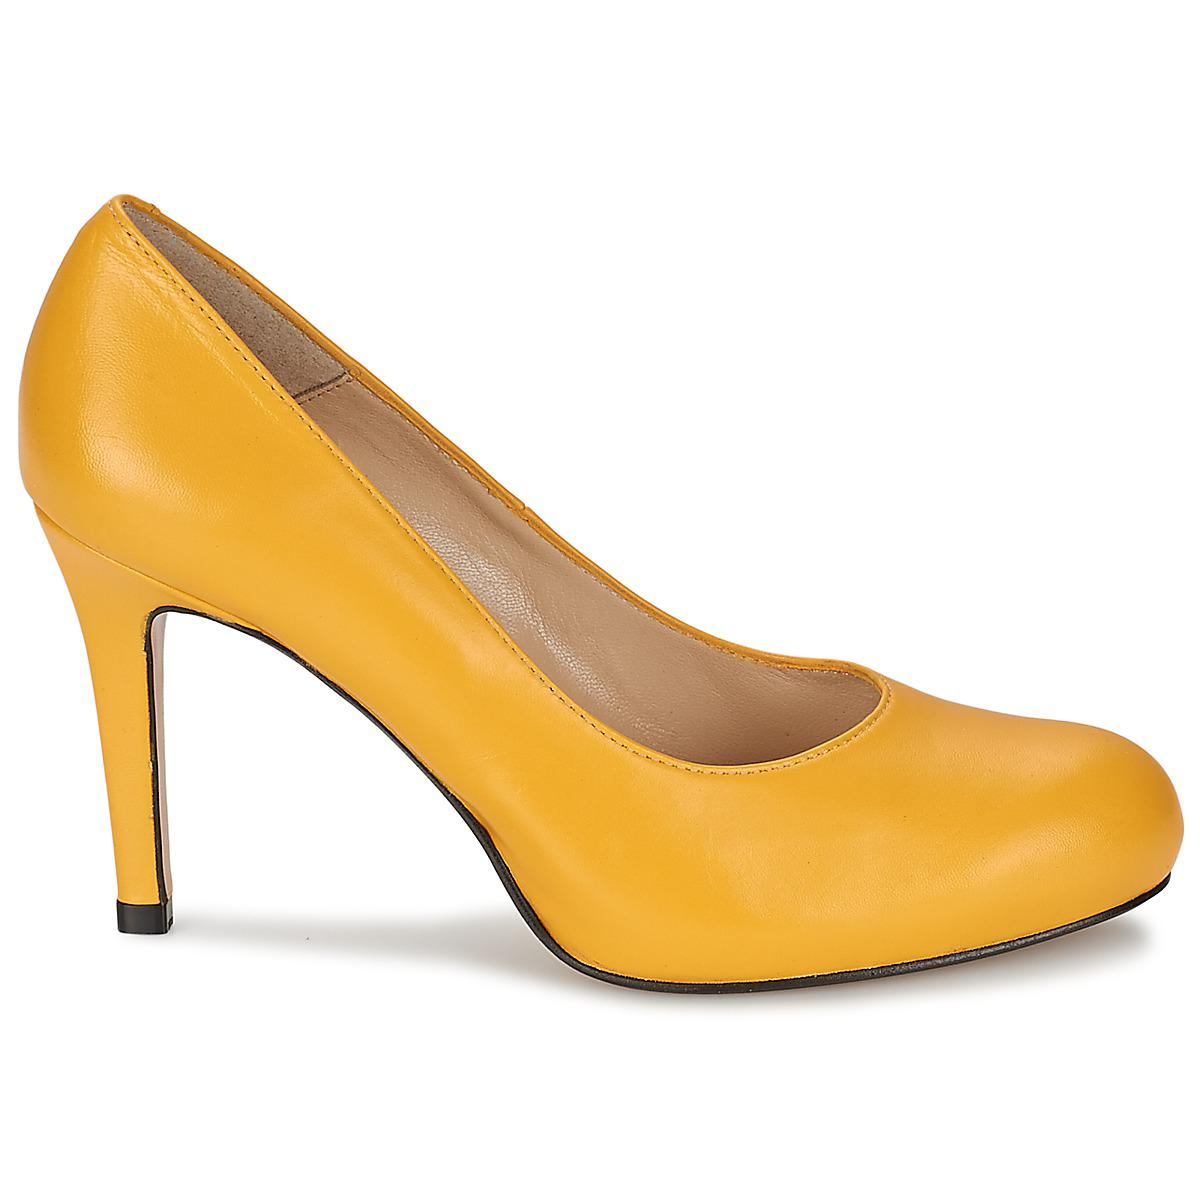 Betty London  Travala Women's Court Shoes In Yellow  Lyst  View Fullscreen